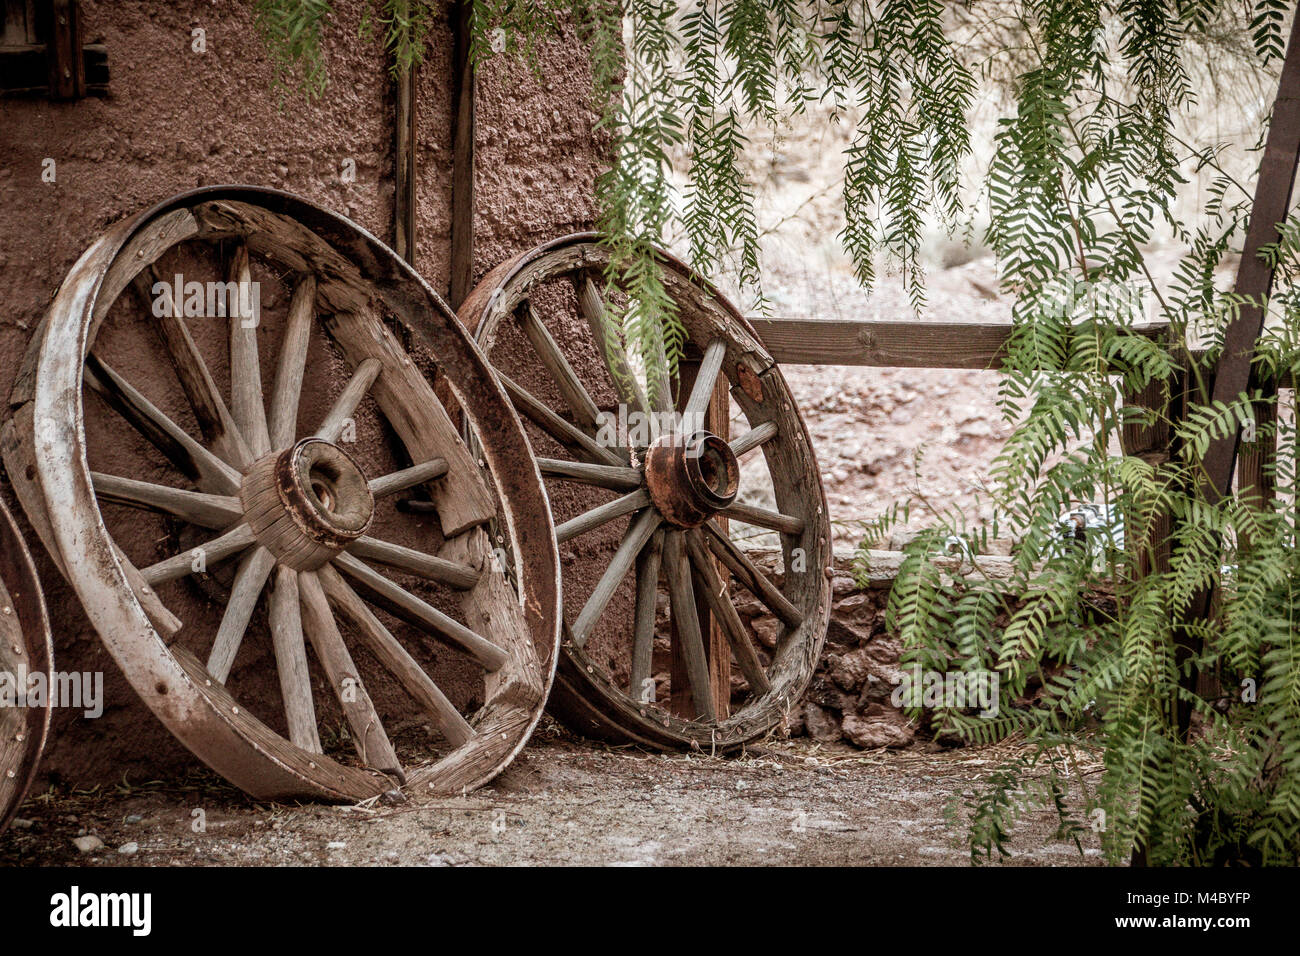 Old broken waggon wheels leaning against a wall - Stock Image